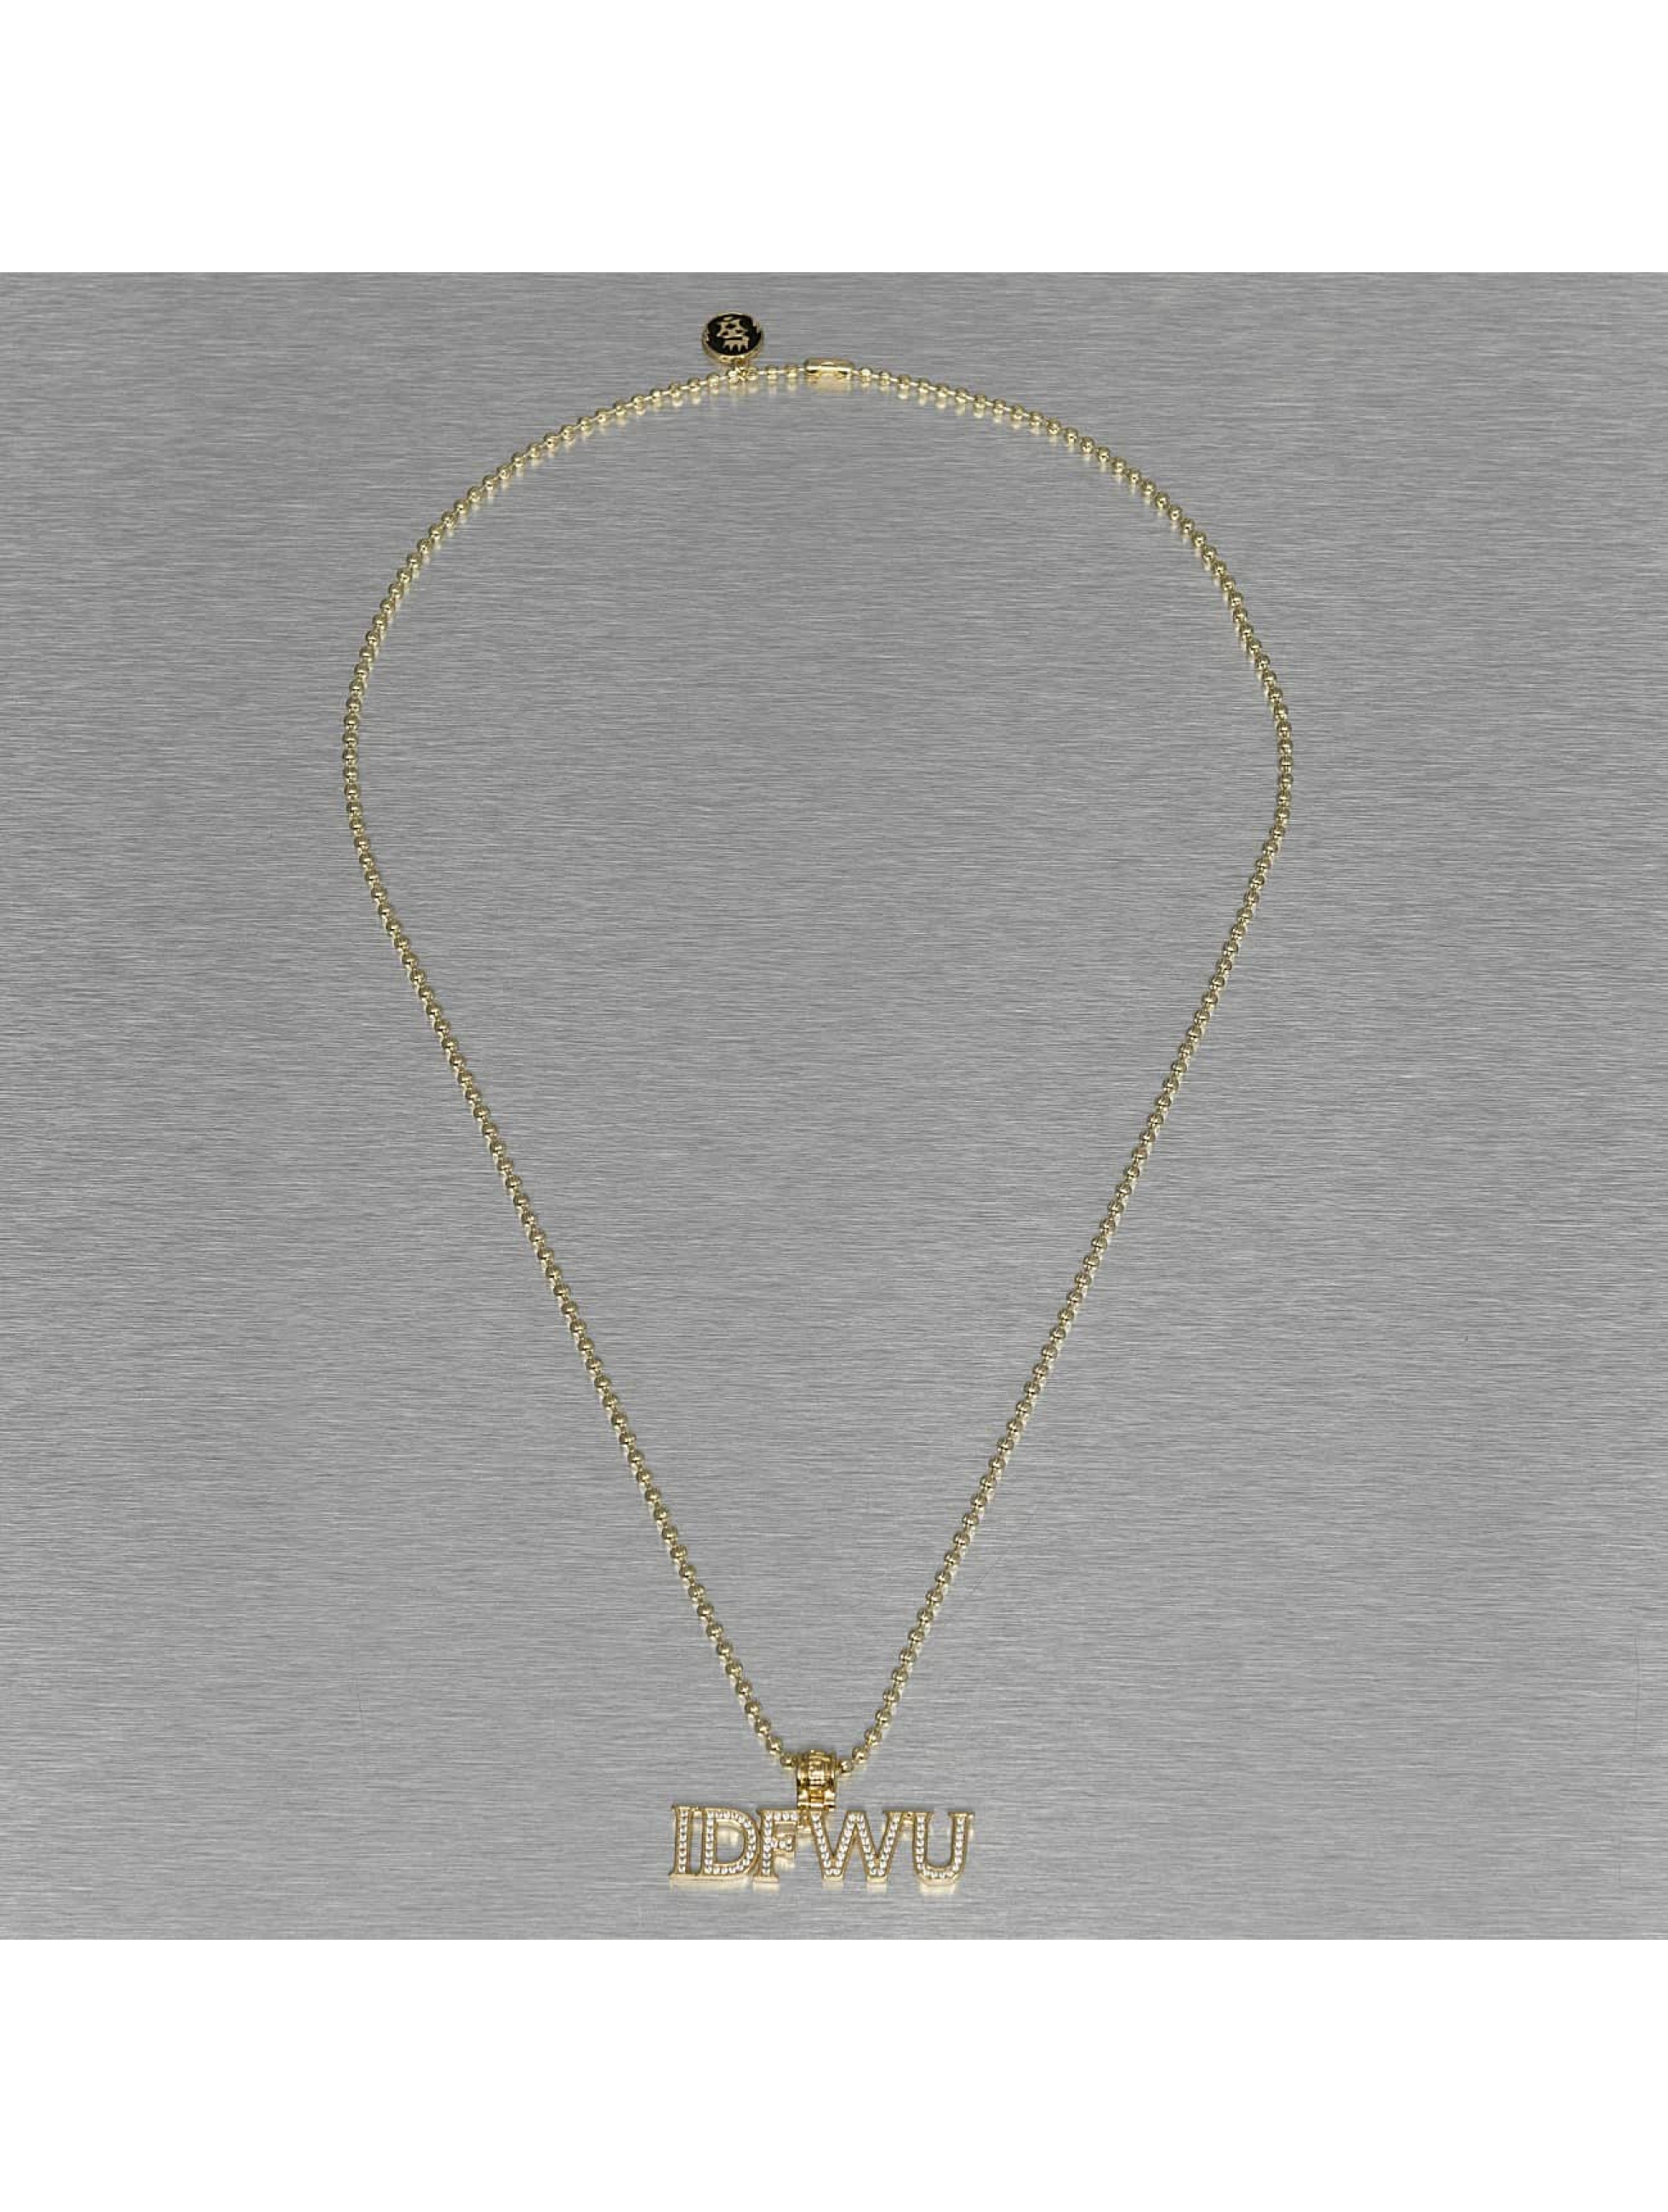 KING ICE Necklace IDFWU gold colored